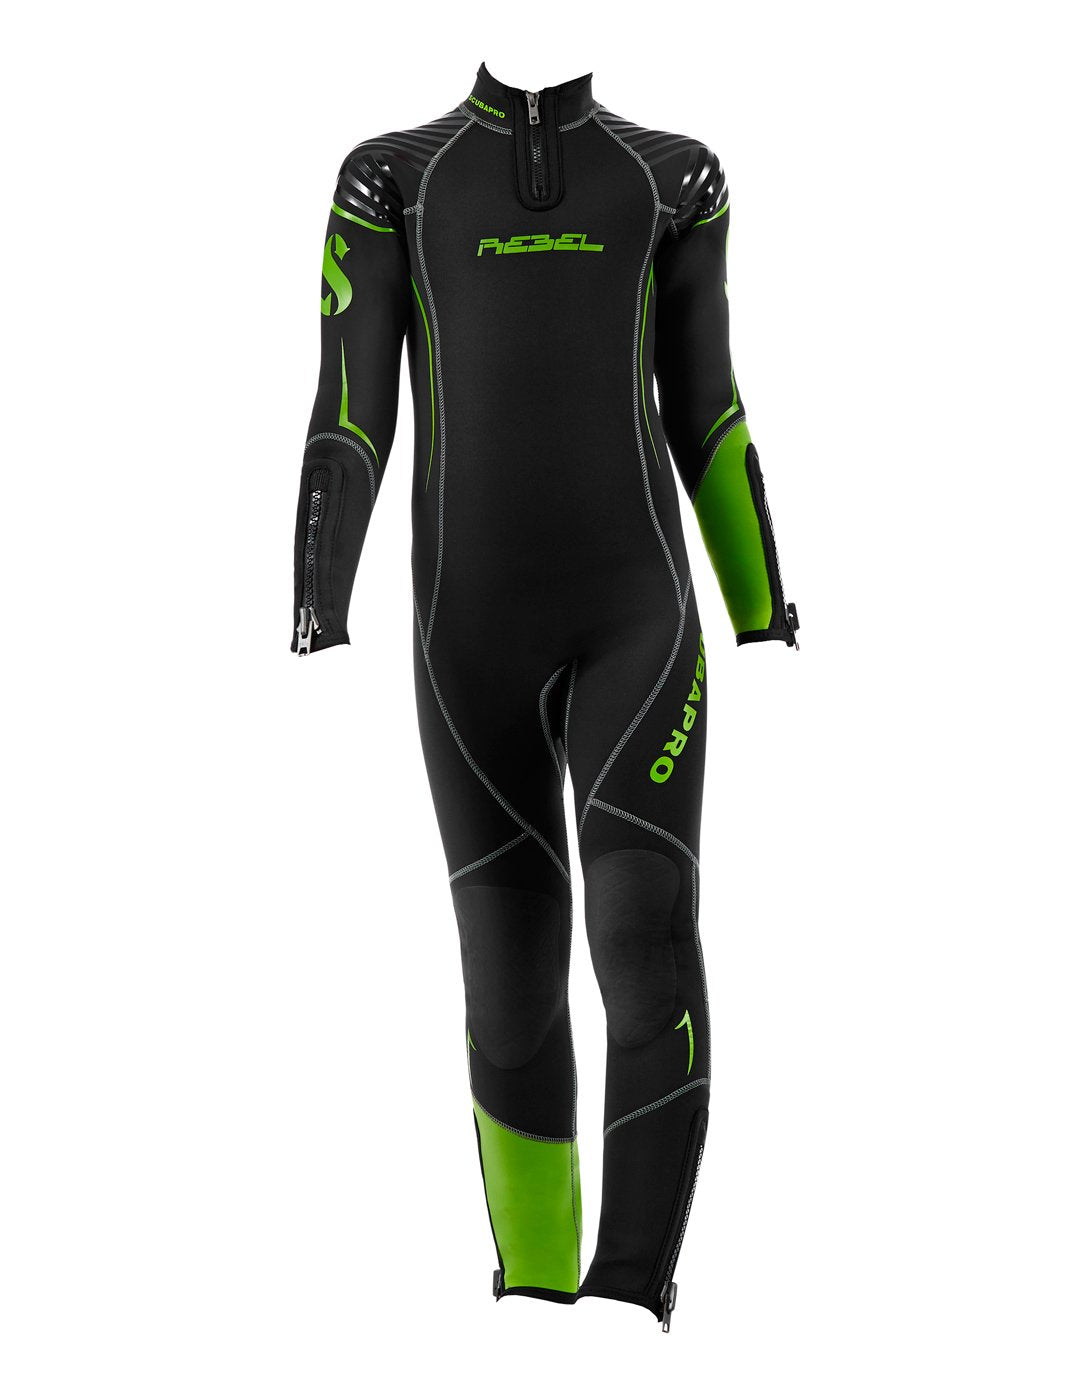 Image of Scubapro Rebel Kids 6mm Wetsuit